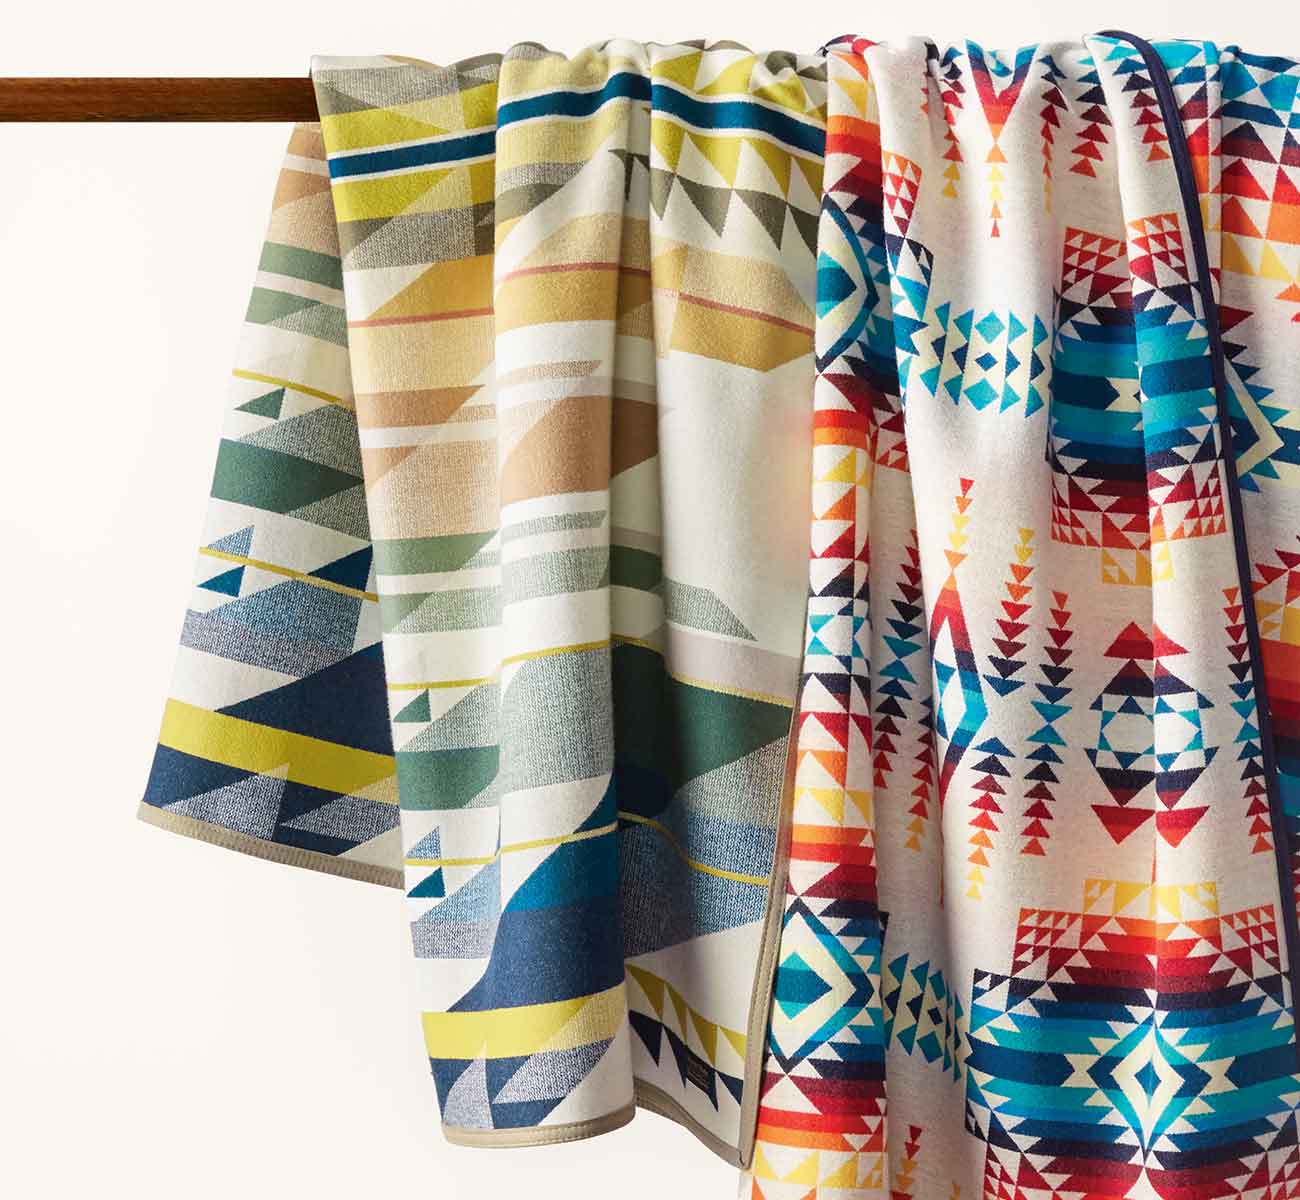 Two hanging patterned wool blankets